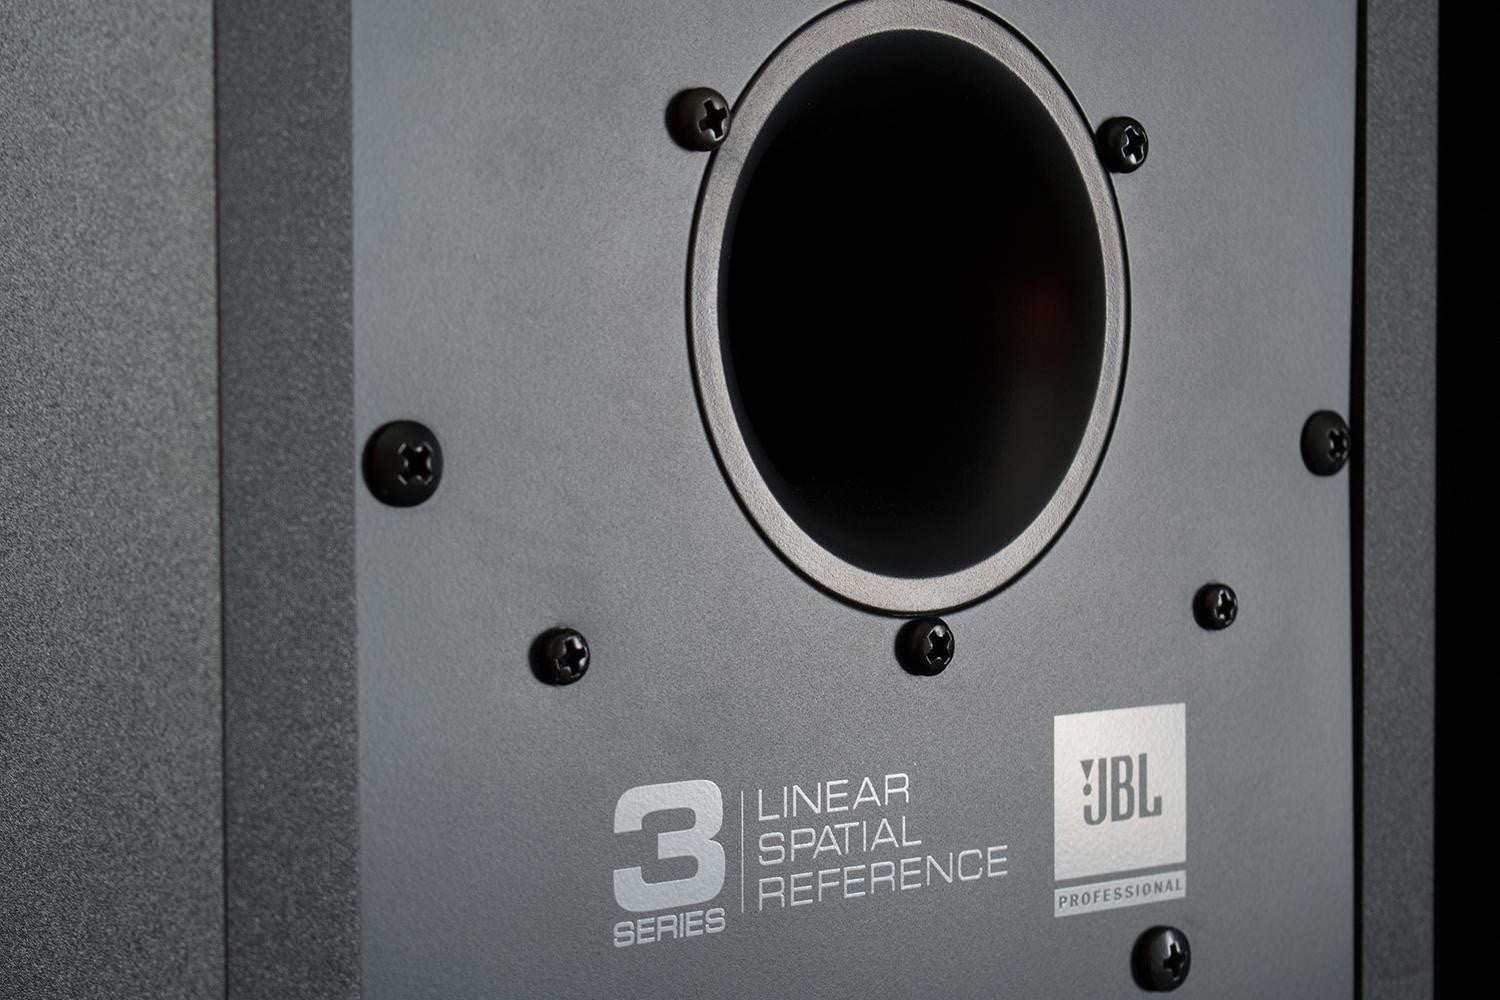 Each Monitors Five Inch Long Throw Woofer And One Soft Dome Tweeter Are Powered By 41 Watts Of Class D Amplification JBL Claims A Frequency Response